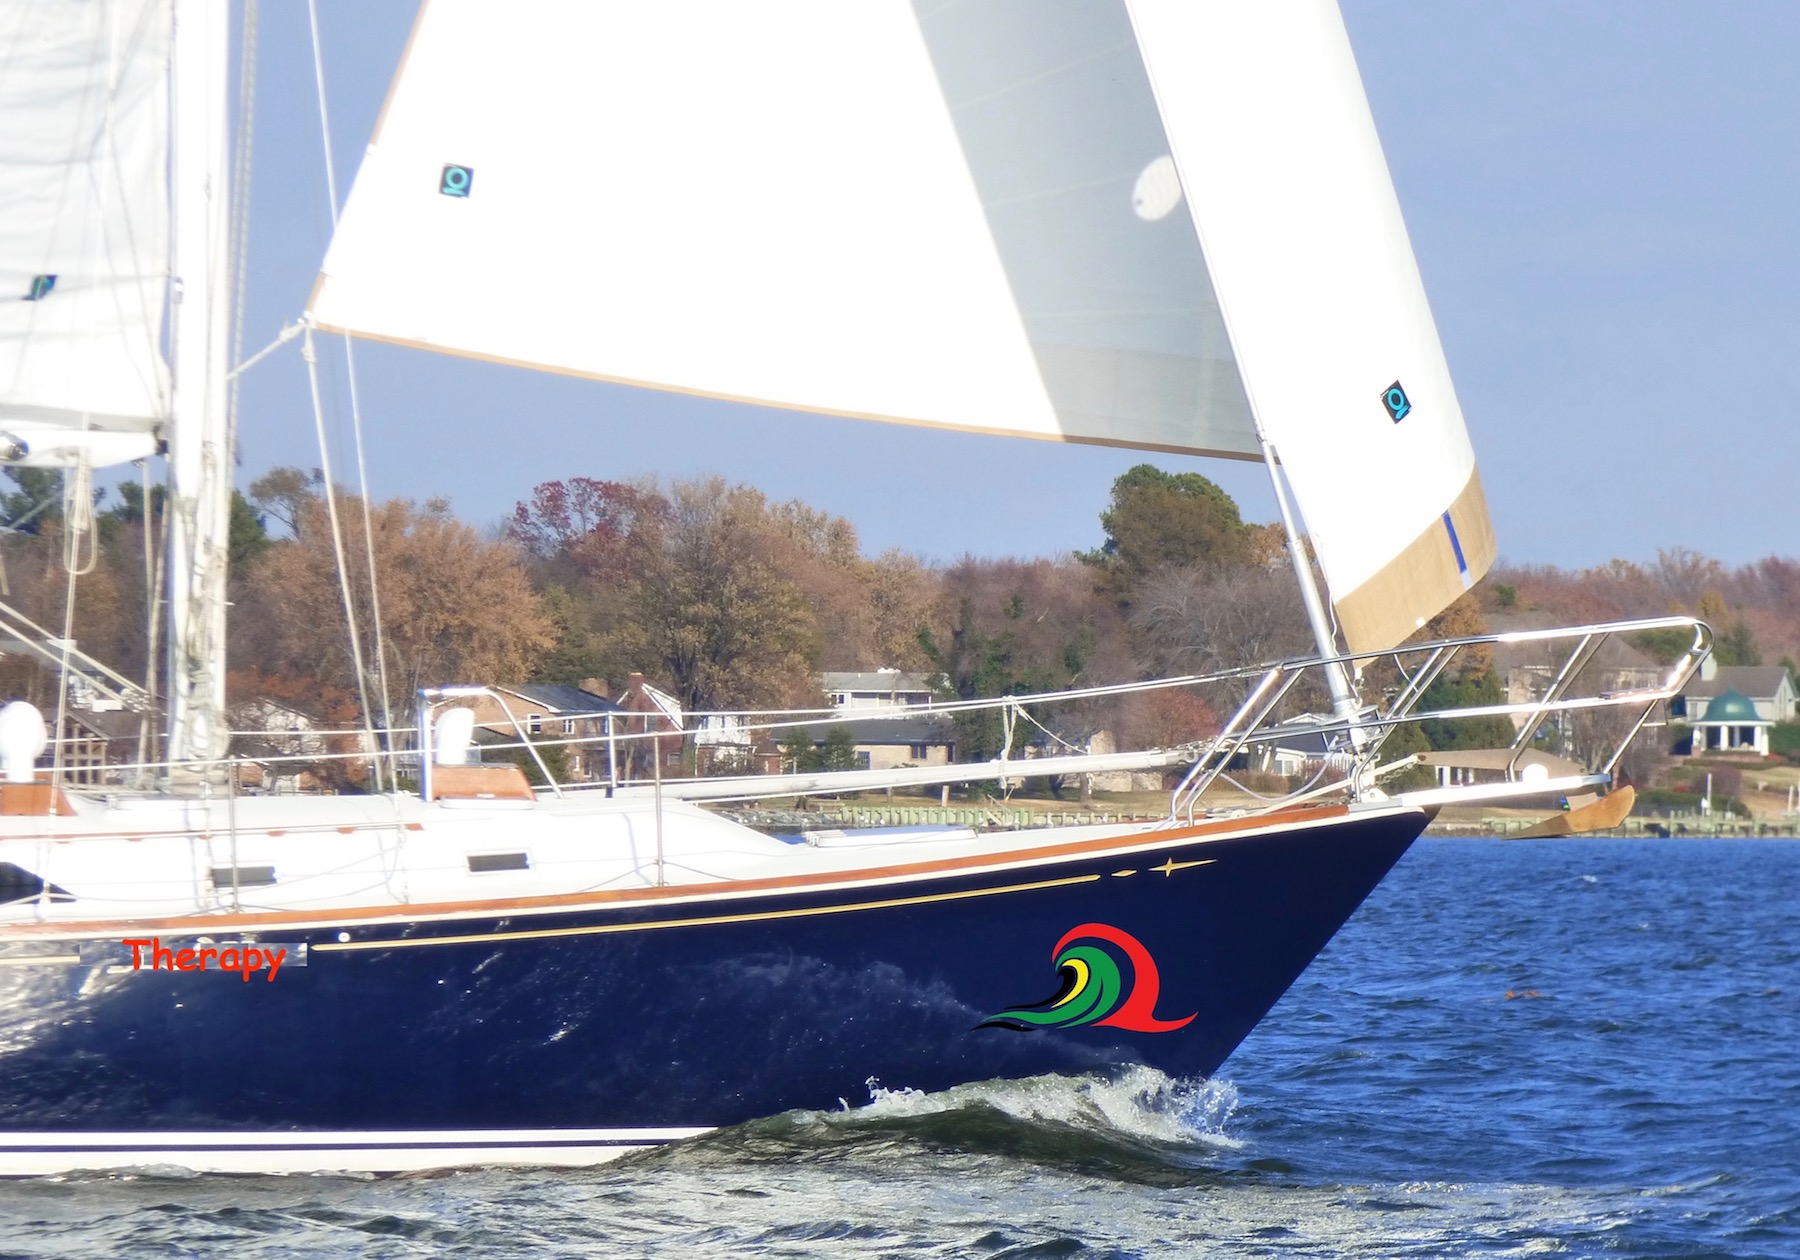 sailboat charter rental Chesapeake bay bareboat Annapolis md south river family birthday